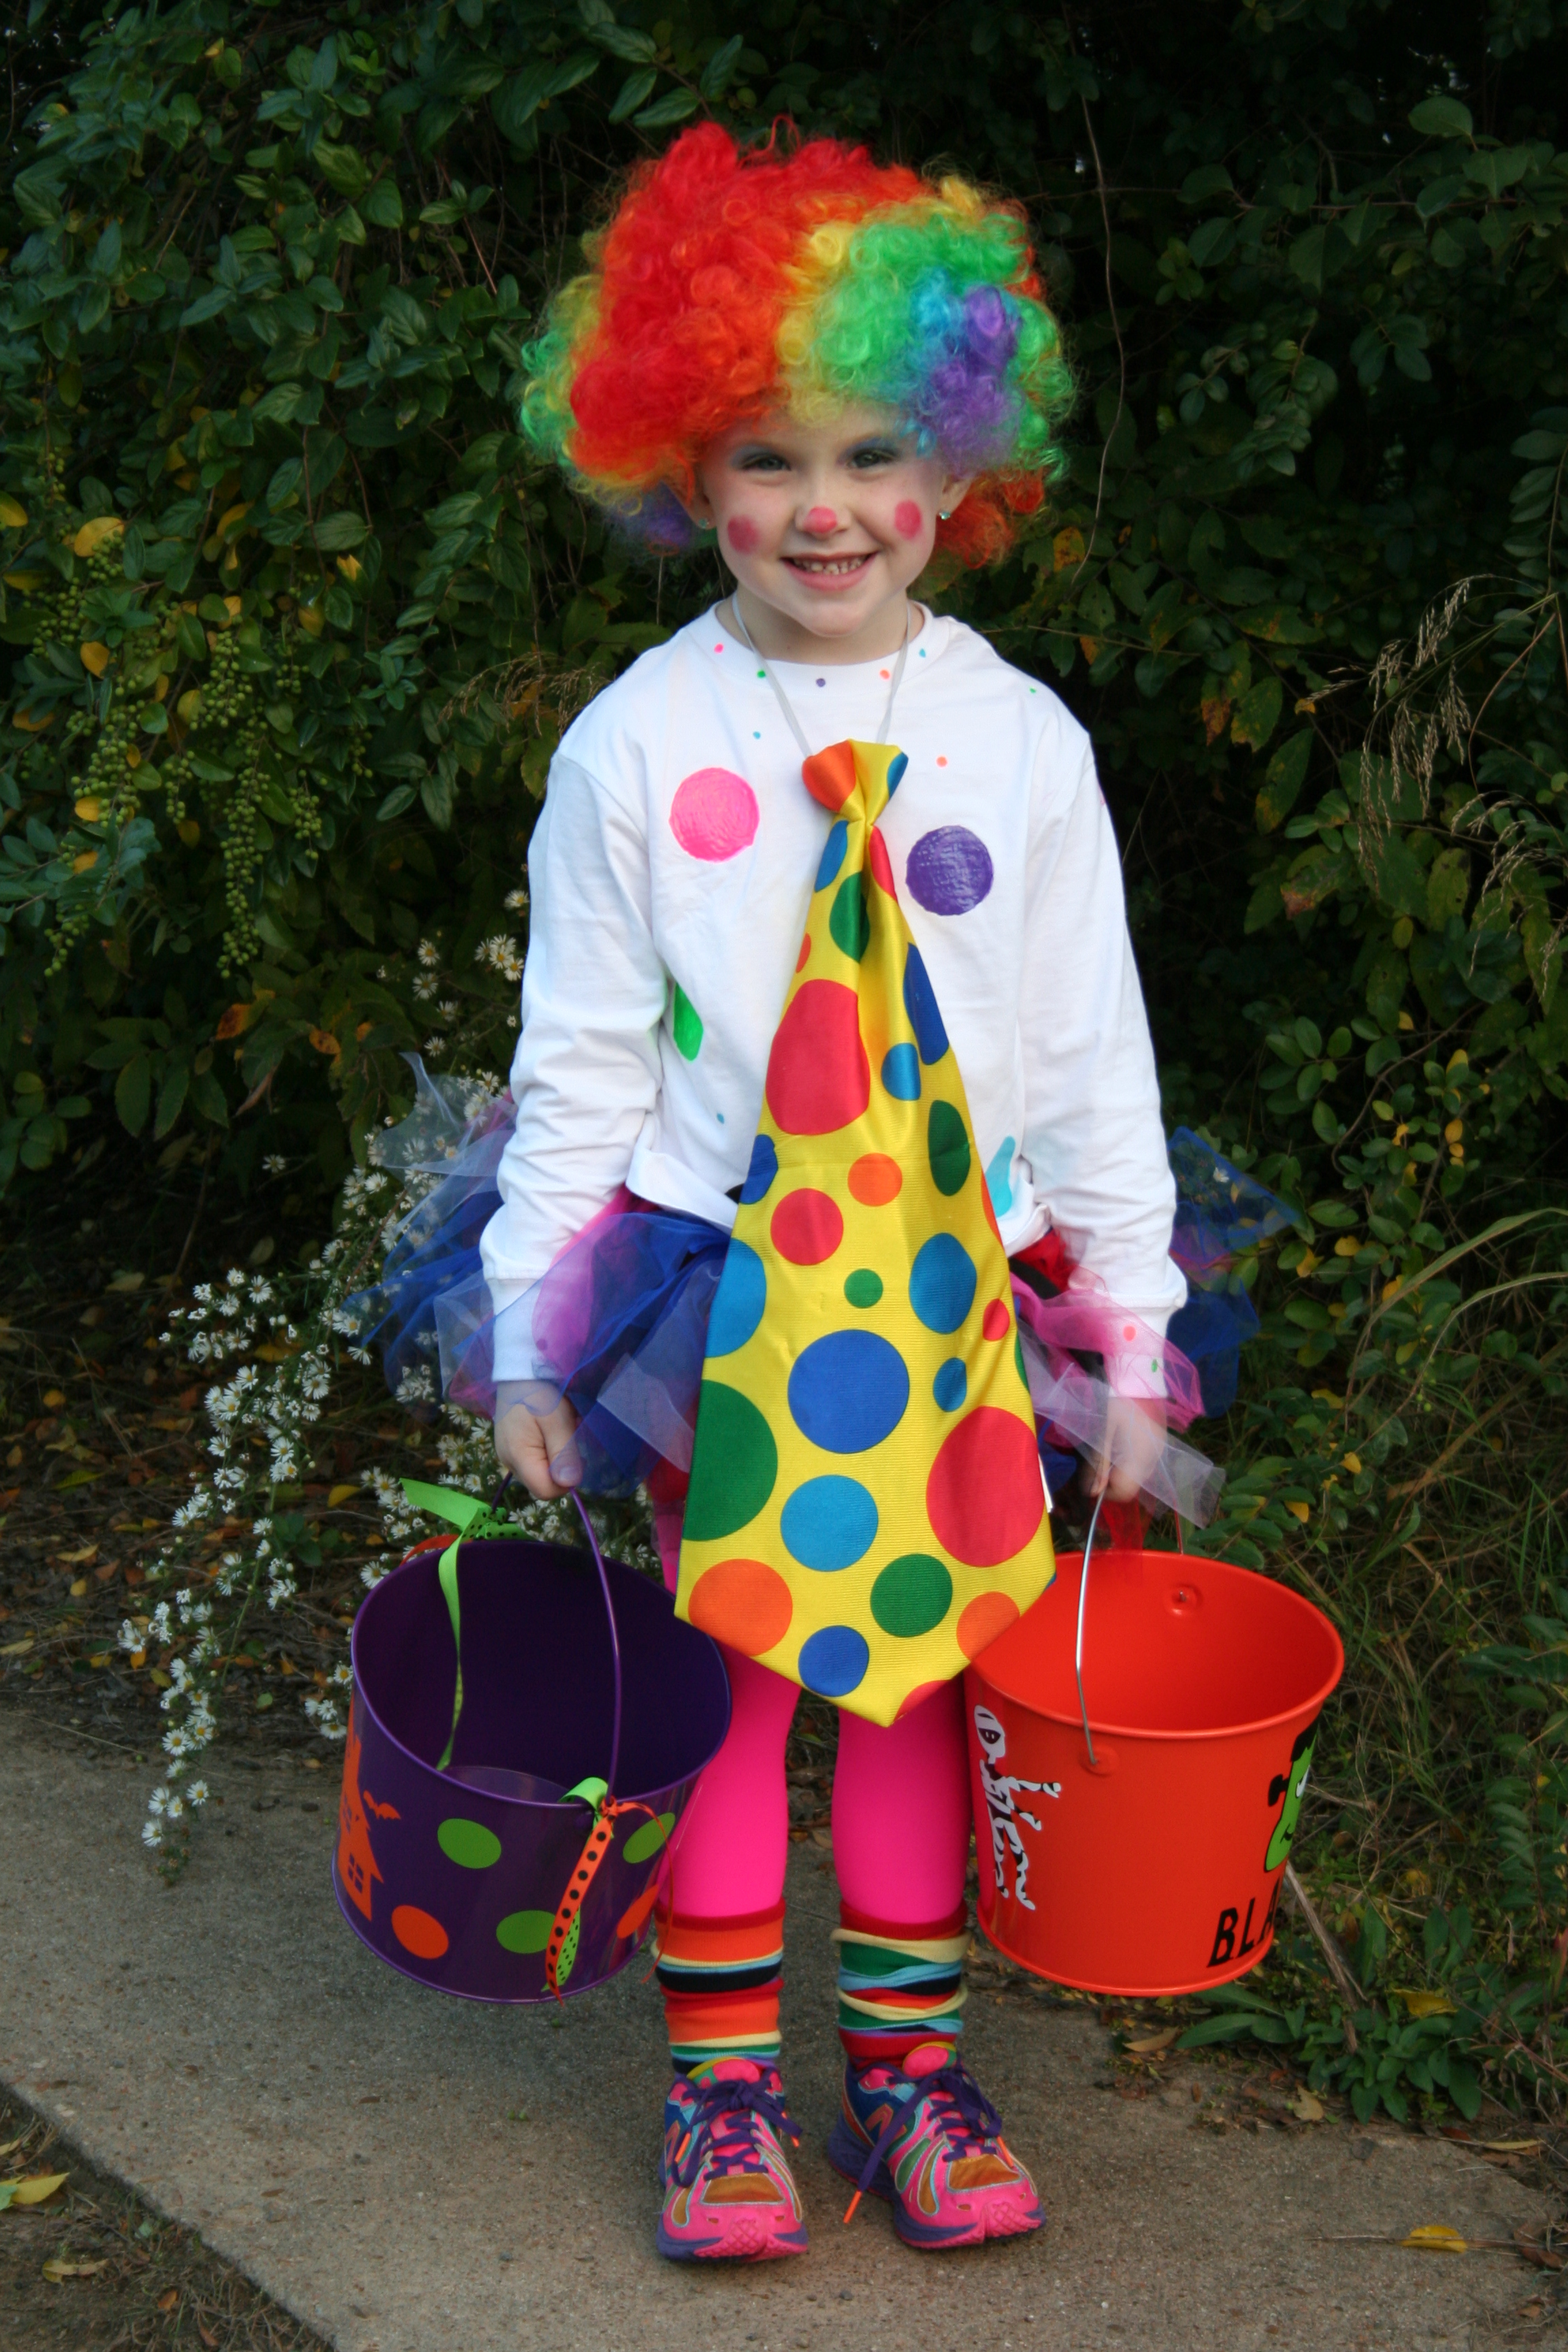 Mayci the Clown from Clarksville